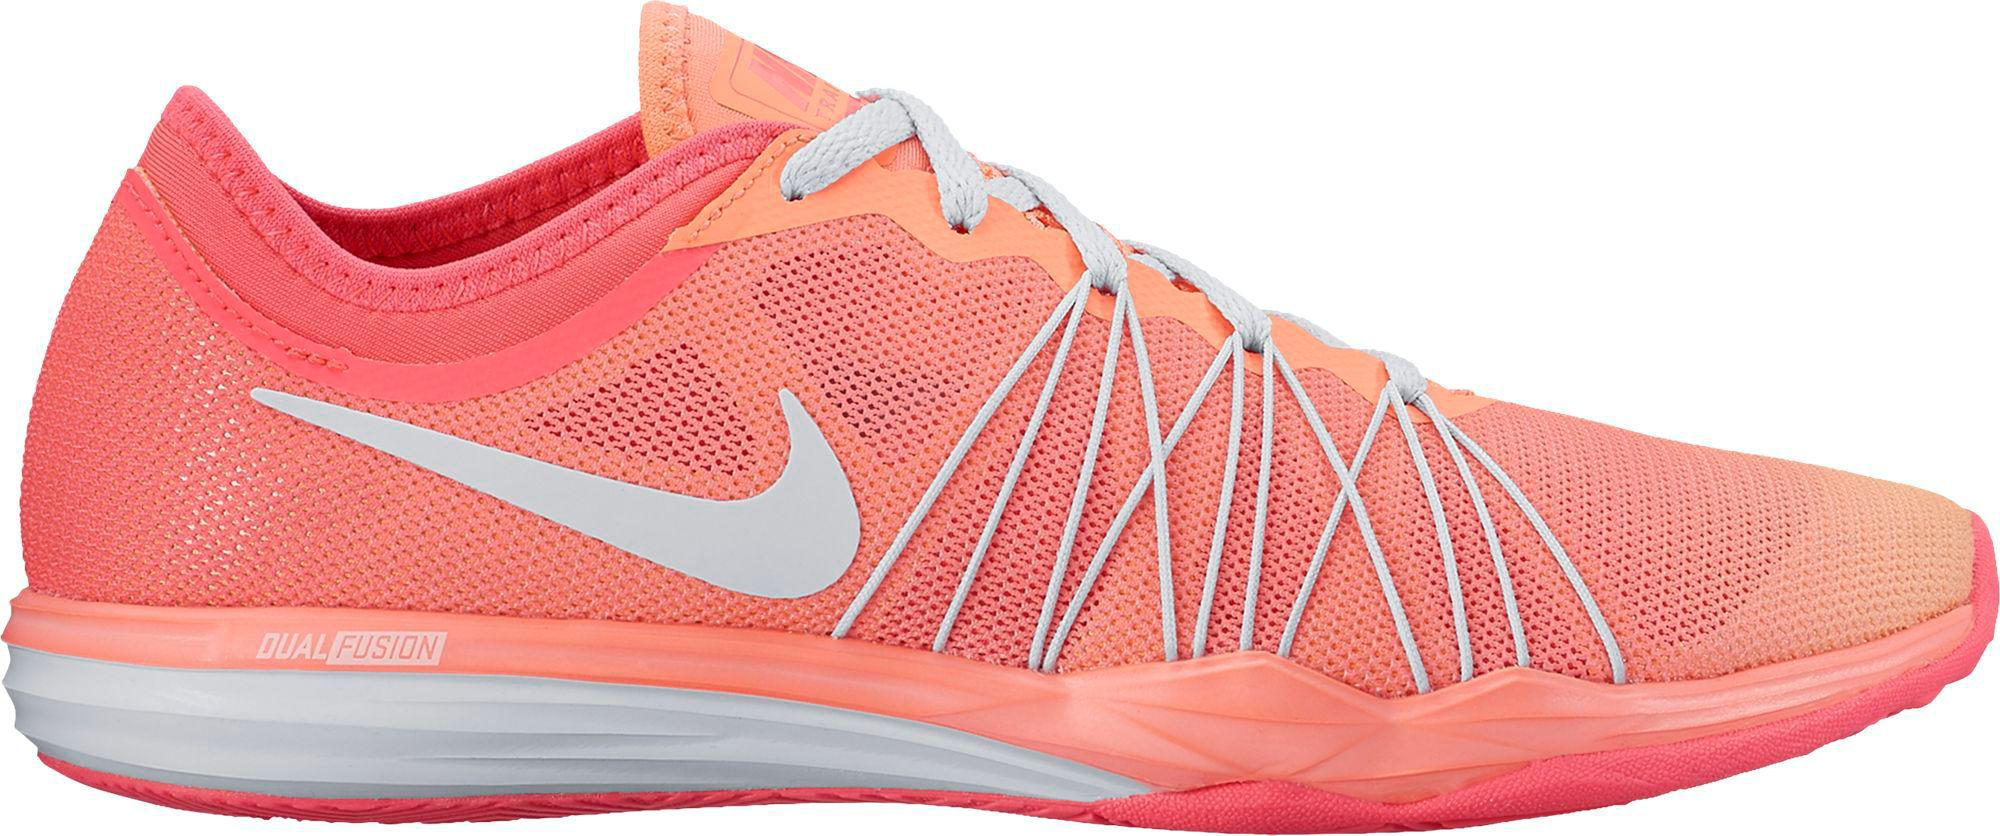 new styles 1b95a f0813 Nike Dual Fusion Tr Hit Fade Training Shoes in Pink - Lyst